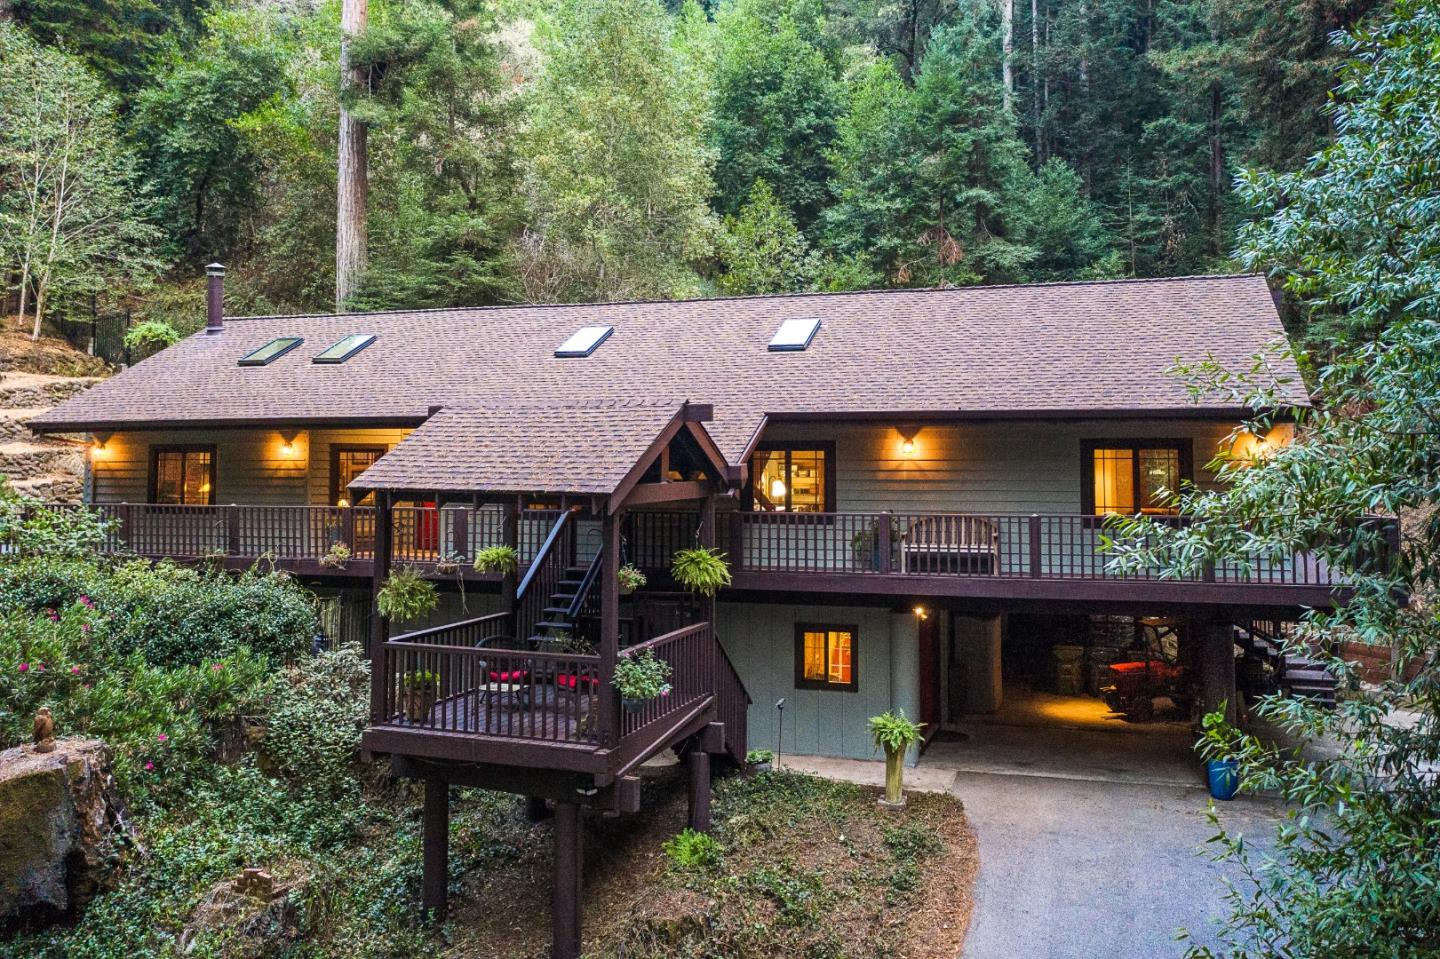 Updated home on quiet private parcel.Picturesque setting, beauty of towering redwoods+bright sunlight.Gorgeous living rm w/vaulted ceilings dramatic fireplace, hardwood floors, custom windows throughout.Updated kitchen has Corian countertops,new glass tile backsplash,stainless steel appliances,& large pantry w/custom Shoji door.Master bedroom w/updated master bath,sitting area,walk-through closet w/5'x12' finished attic for storage or other use.2 add.bedrms offer lrg lofts.child/teenage paradise.Bonus room,accessed from carport for 4th bedroom or whatever. Outdoor area has expansive deck, kitchen area w/sink, extensive cabinets, countertops,hot tub,outdoor lighting & built-in benches.New exterior paint, plenty of parking recreational vehicles,2-car carport,extra parking.Great location w/access from Soquel-San Jose Road,Branciforte Hwy 17.Approx.10 mins(5.9 miles) to Soquel Village,just a bit further to beaches. 3.5mi to Hyw17,10 mins to Scotts Valley.